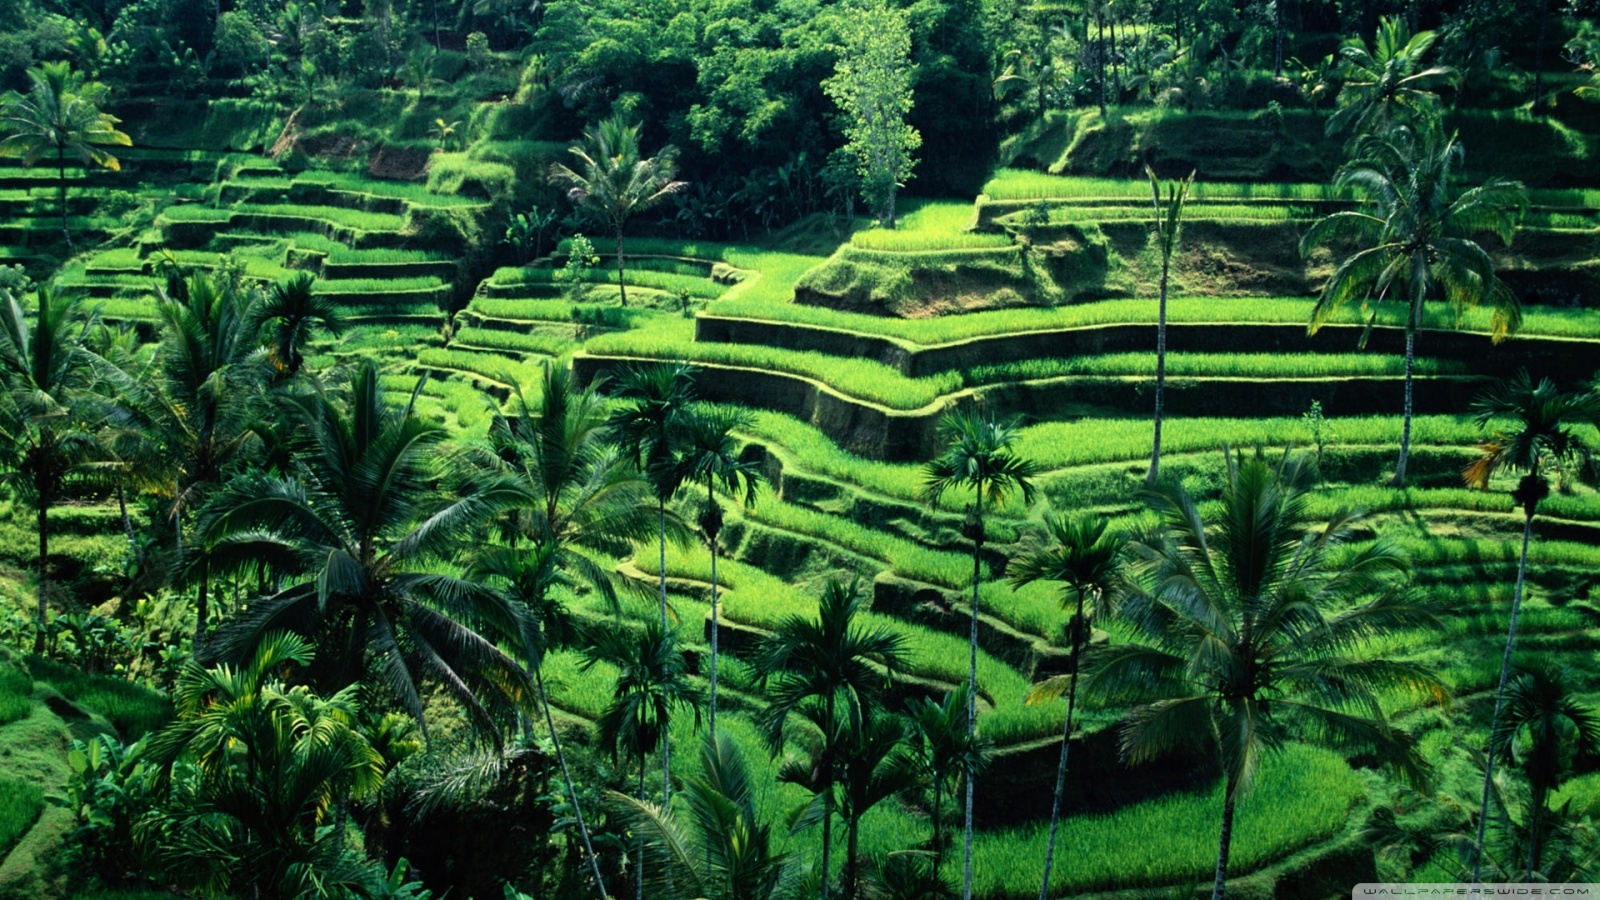 Bali wariga tour guide and driver jatiluwih rice terrace for Define terrace farming